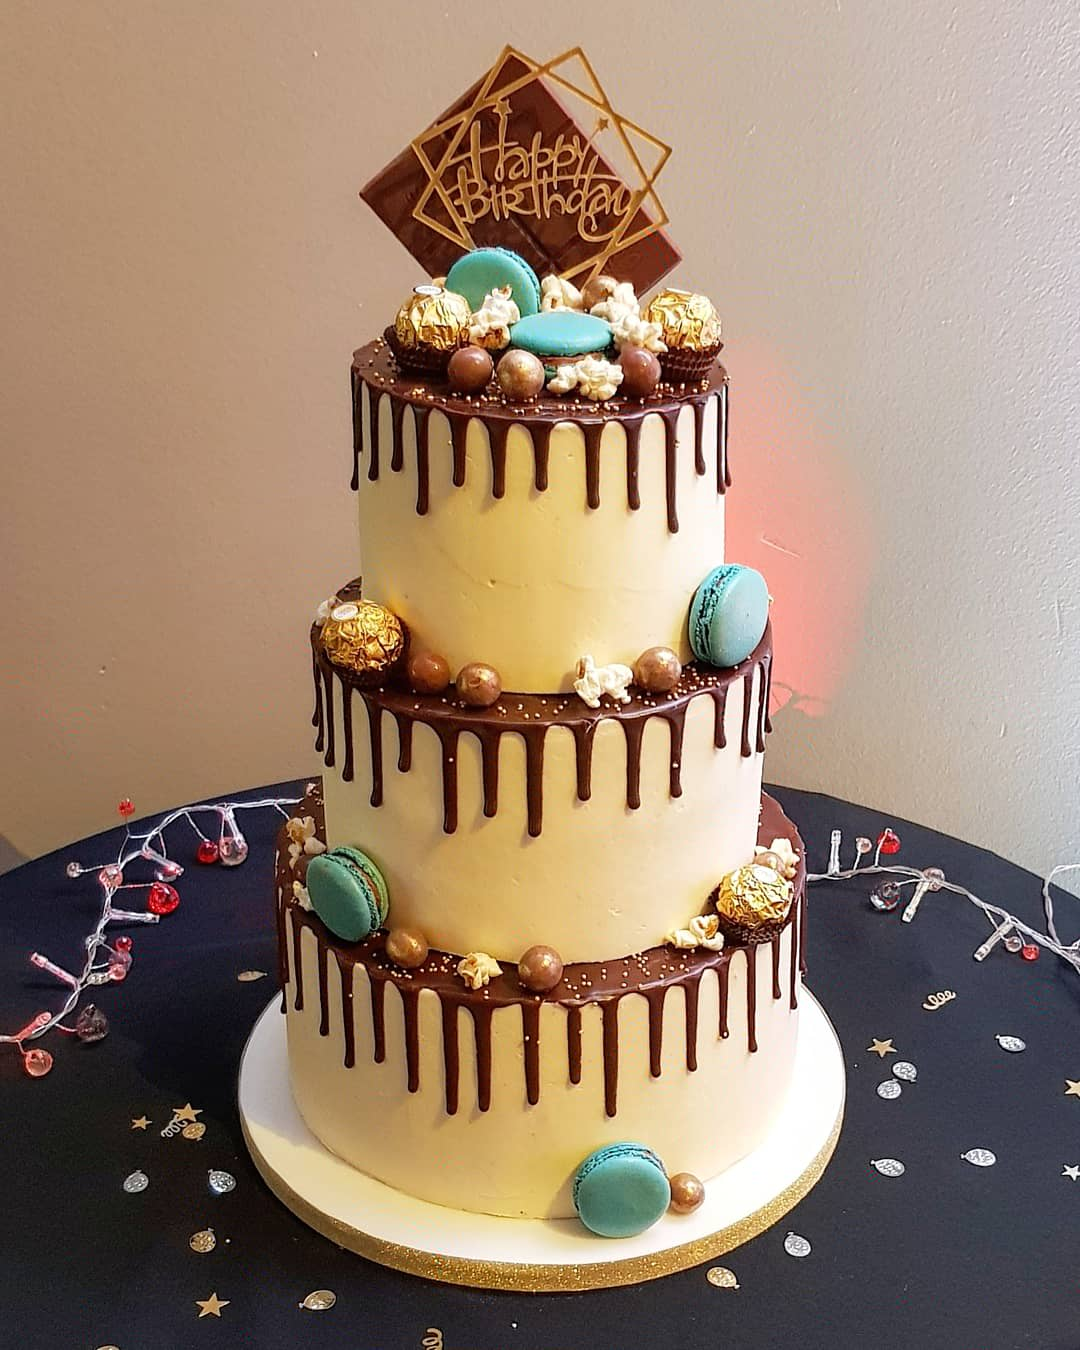 A Piece Of Cake - Cakes for all occasions